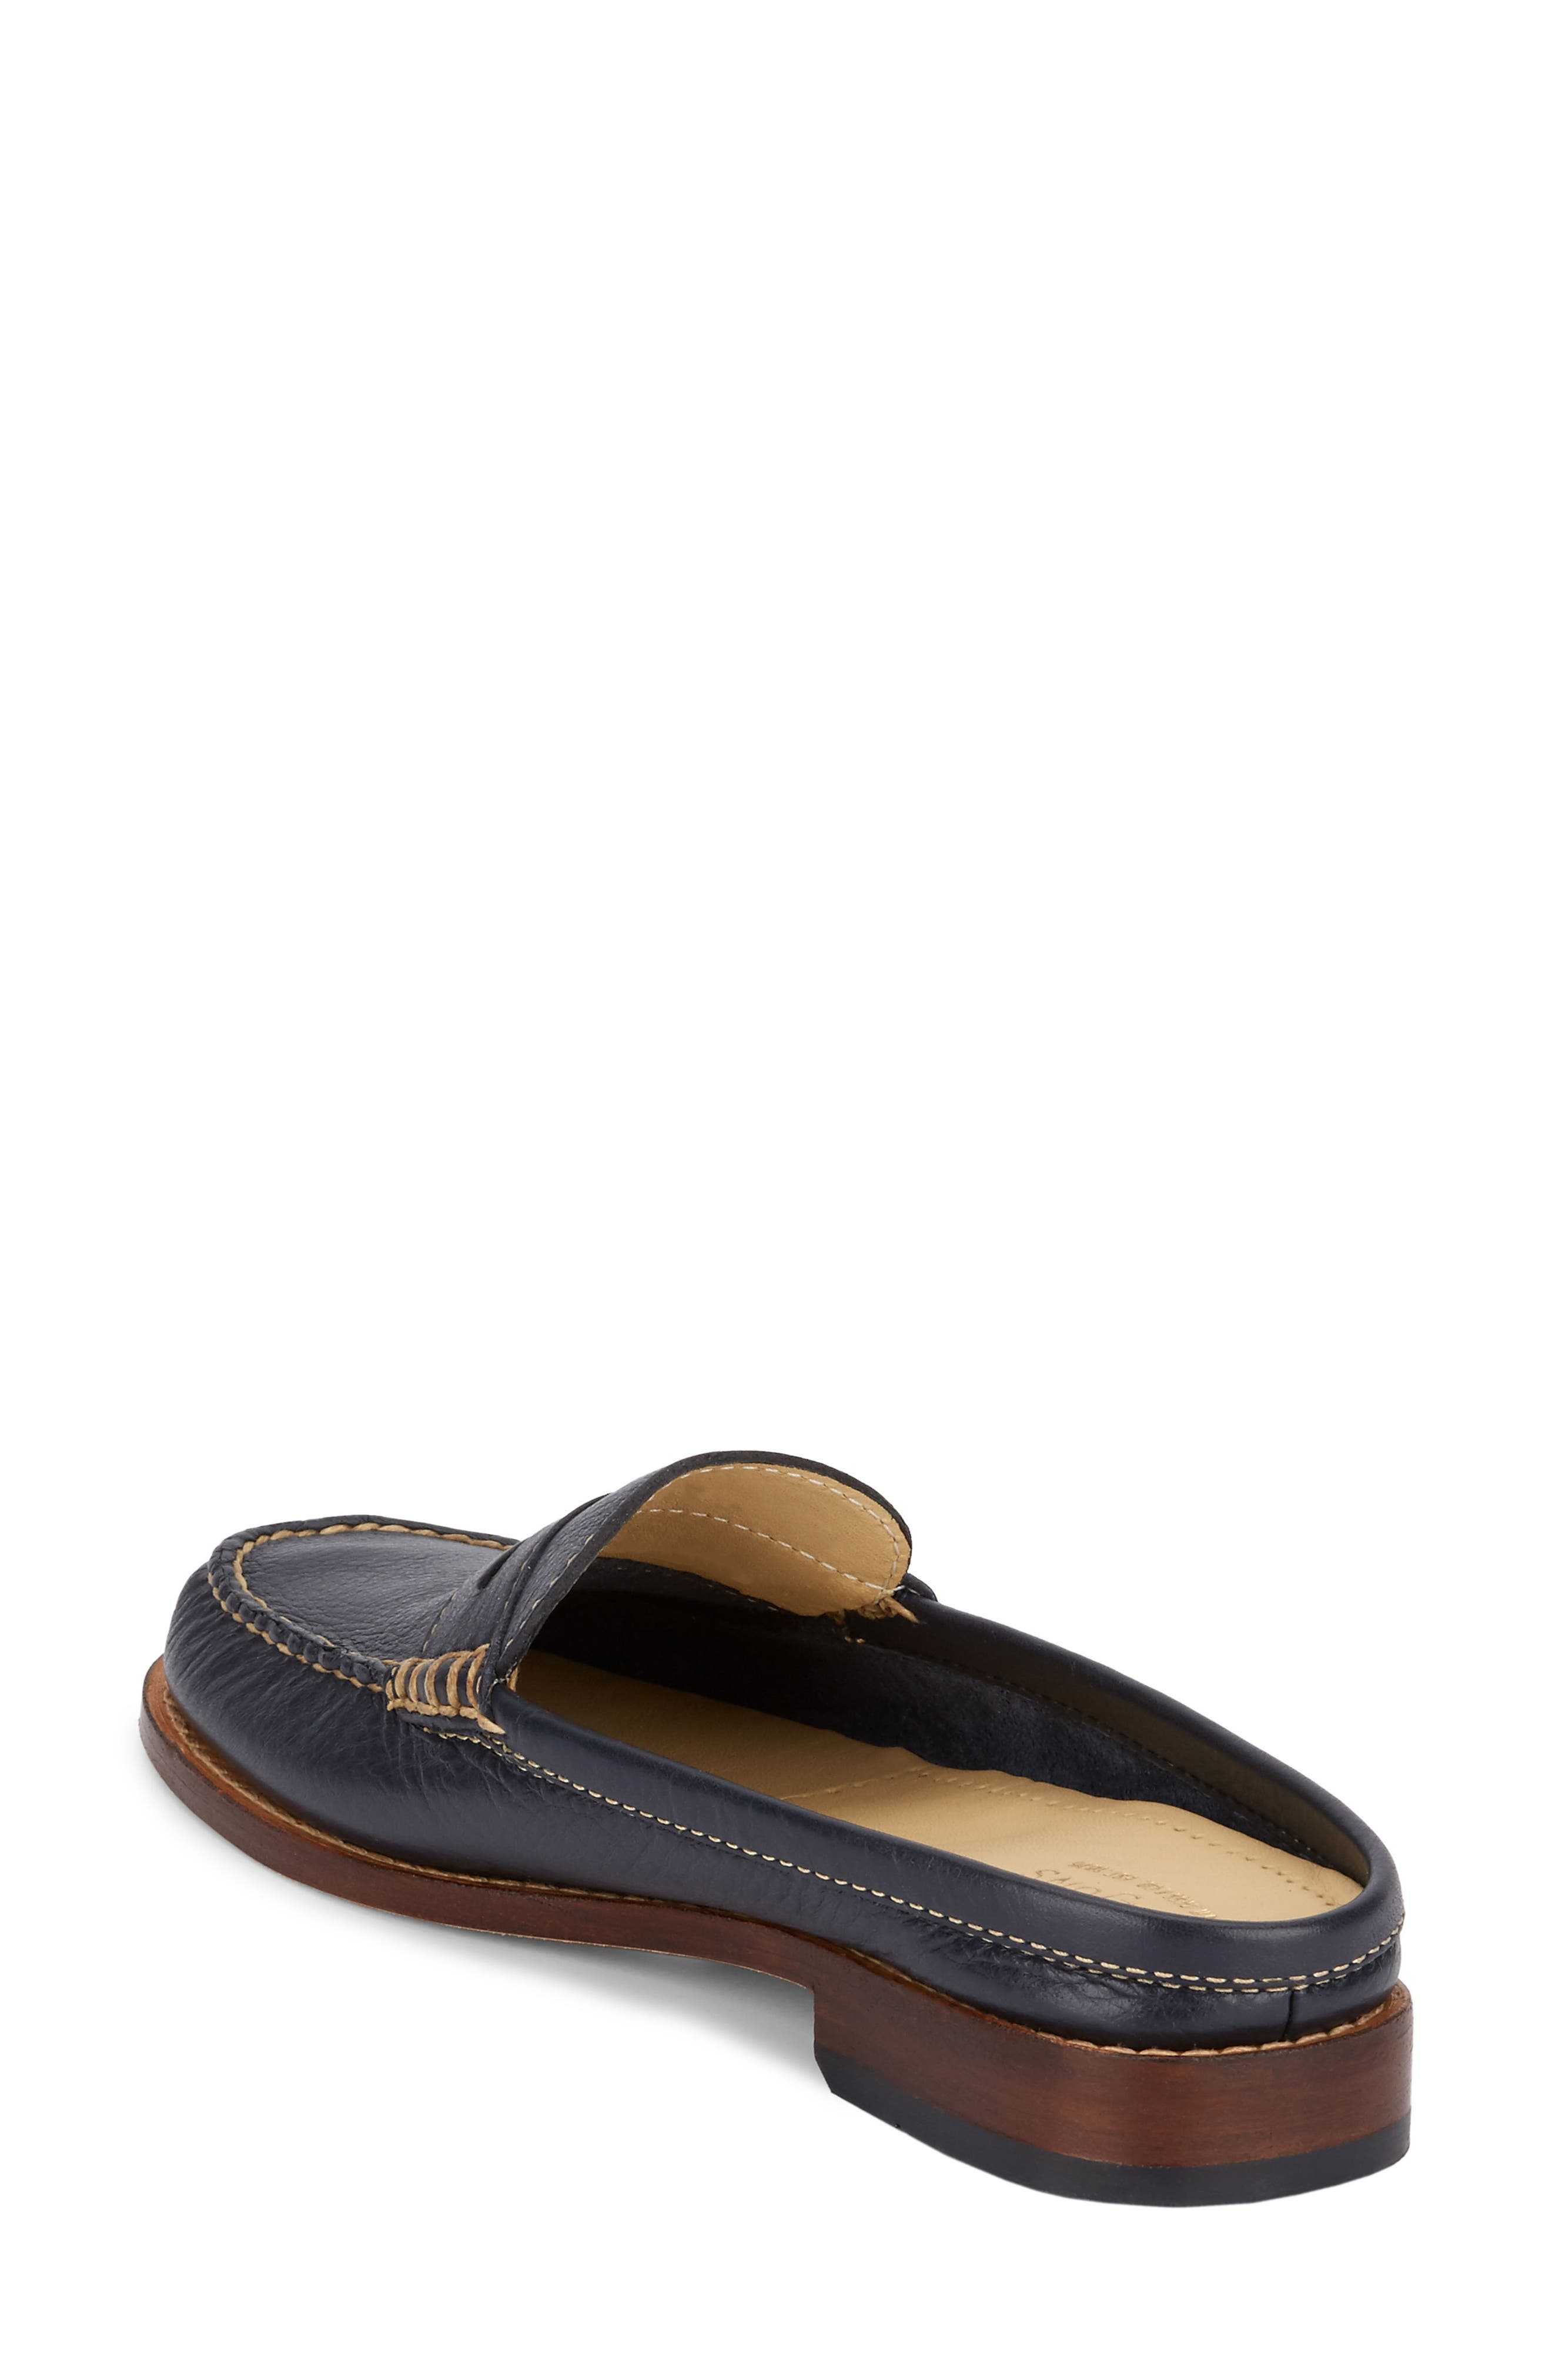 Wynn Loafer Mule,                             Alternate thumbnail 2, color,                             Navy Leather